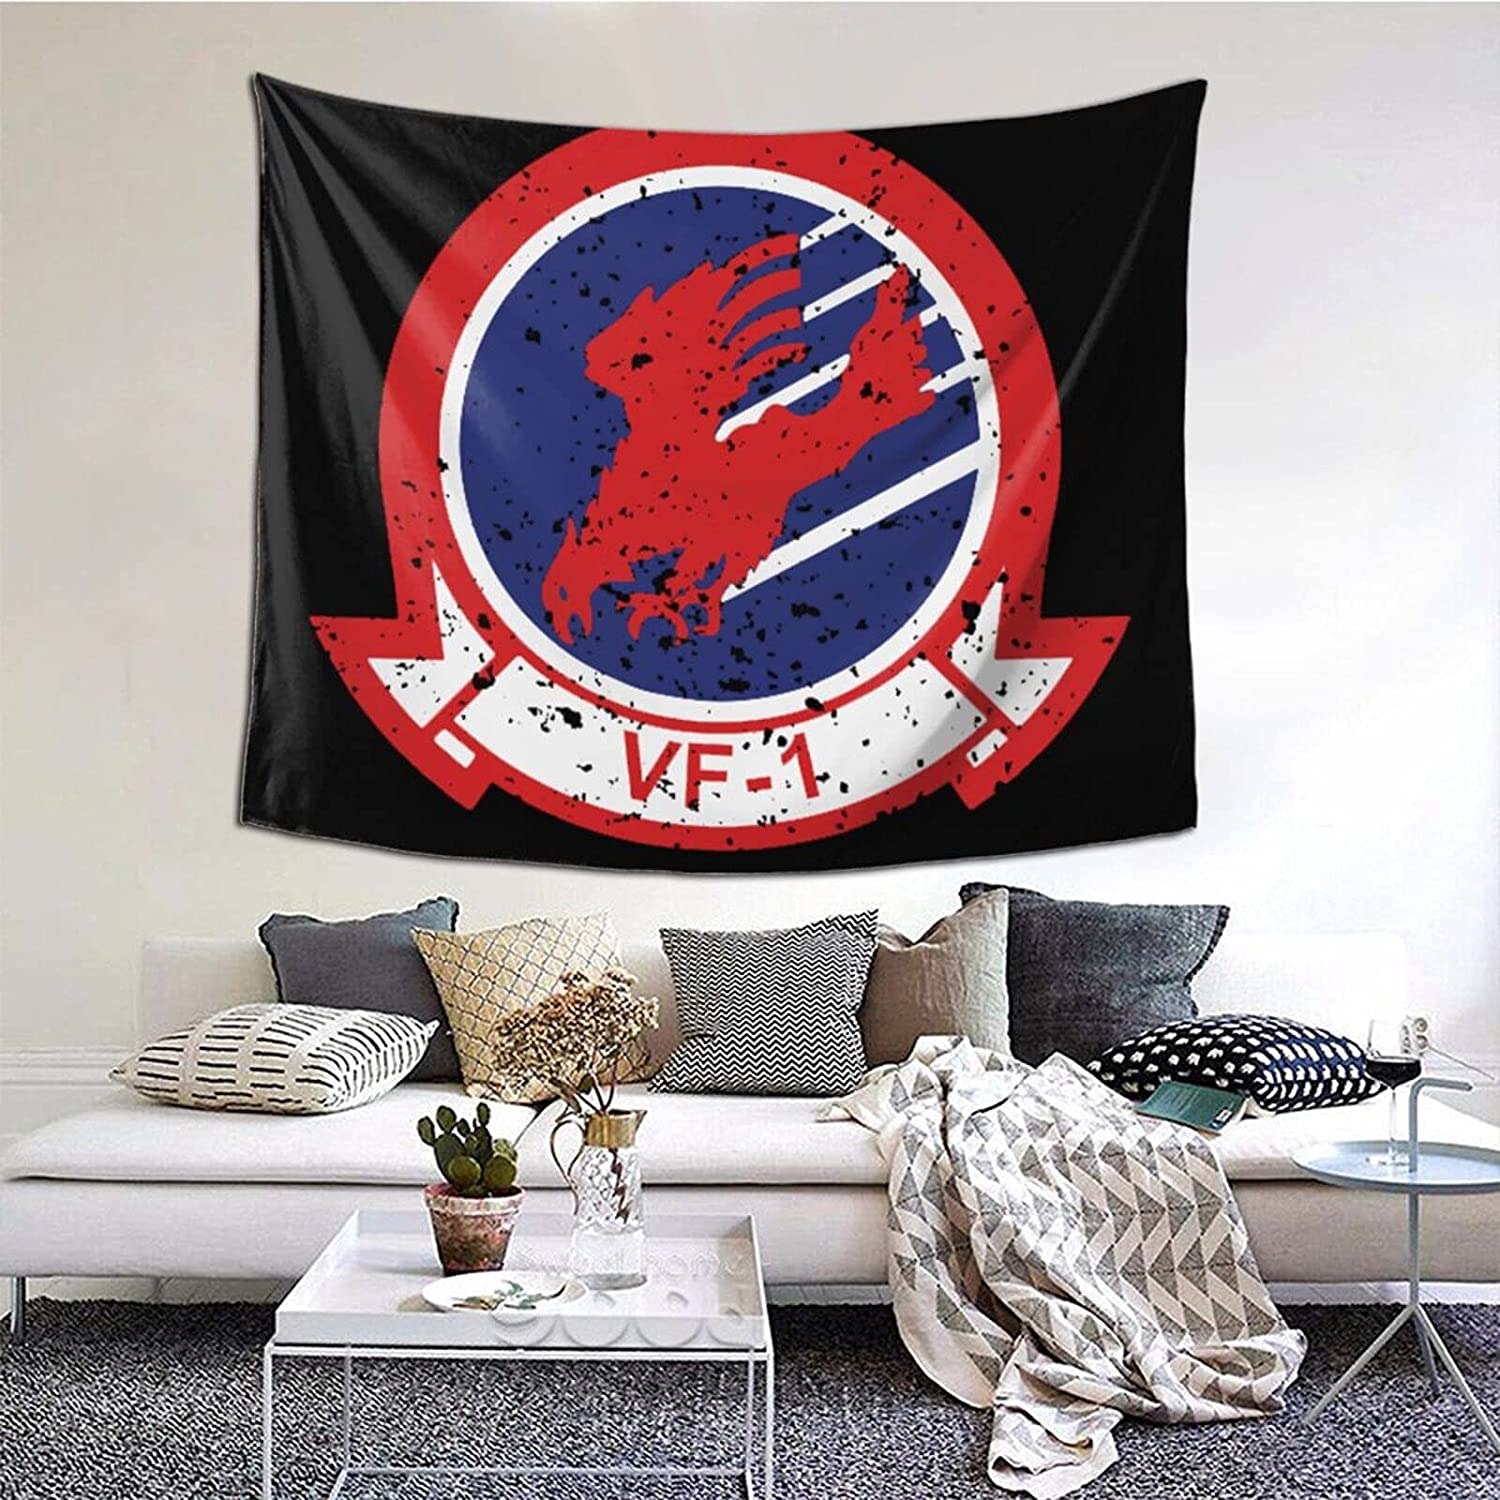 Classic Top Gun Vf-1 Tapestries With Art Nature Home Stylish Wall Hangings Tapestry Bedroom Party Decor (60 X 51 Inch)